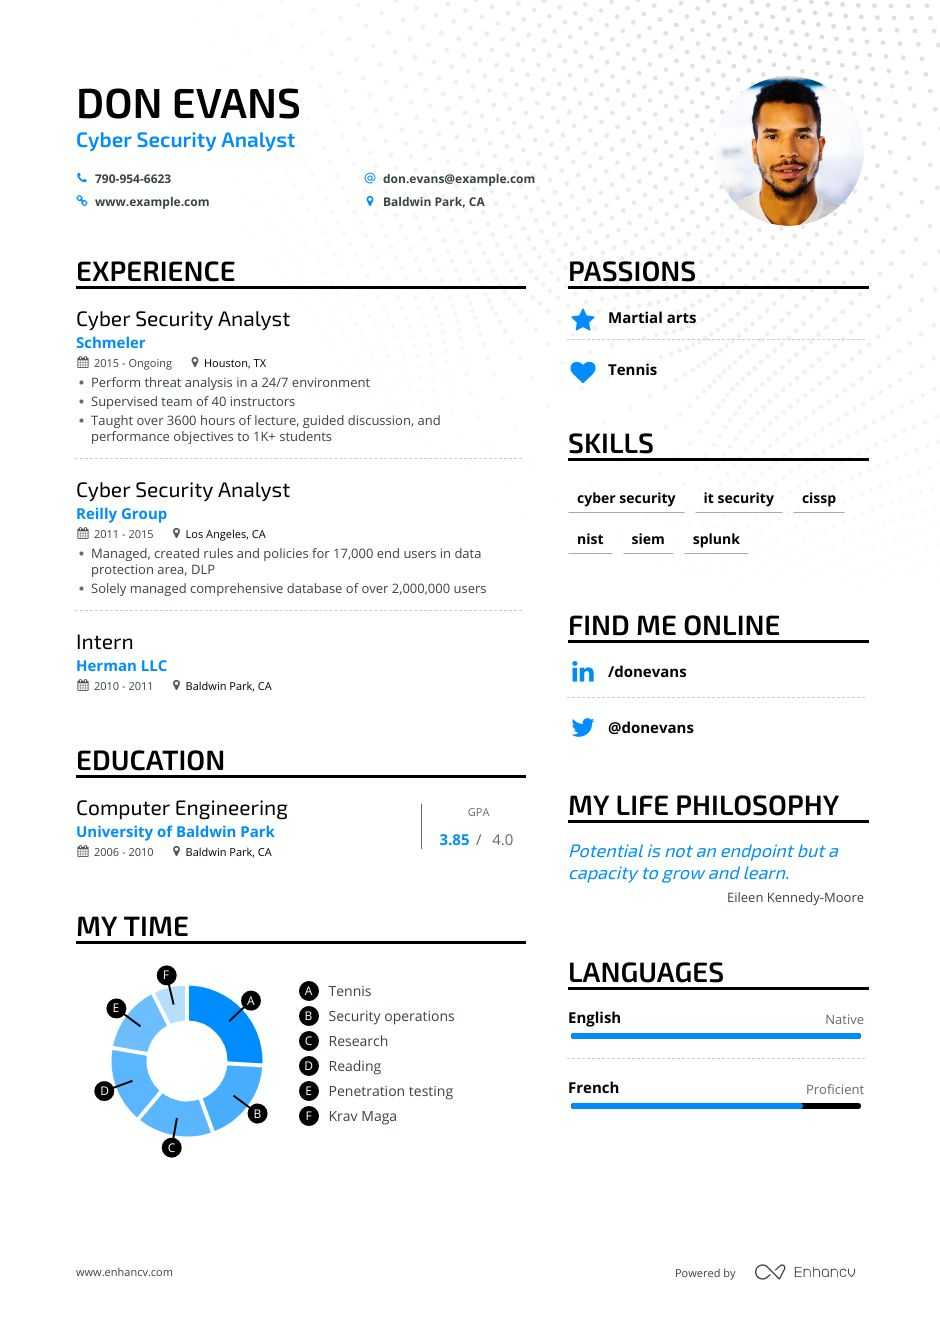 cyber security analyst resume examples guide  u0026 pro tips